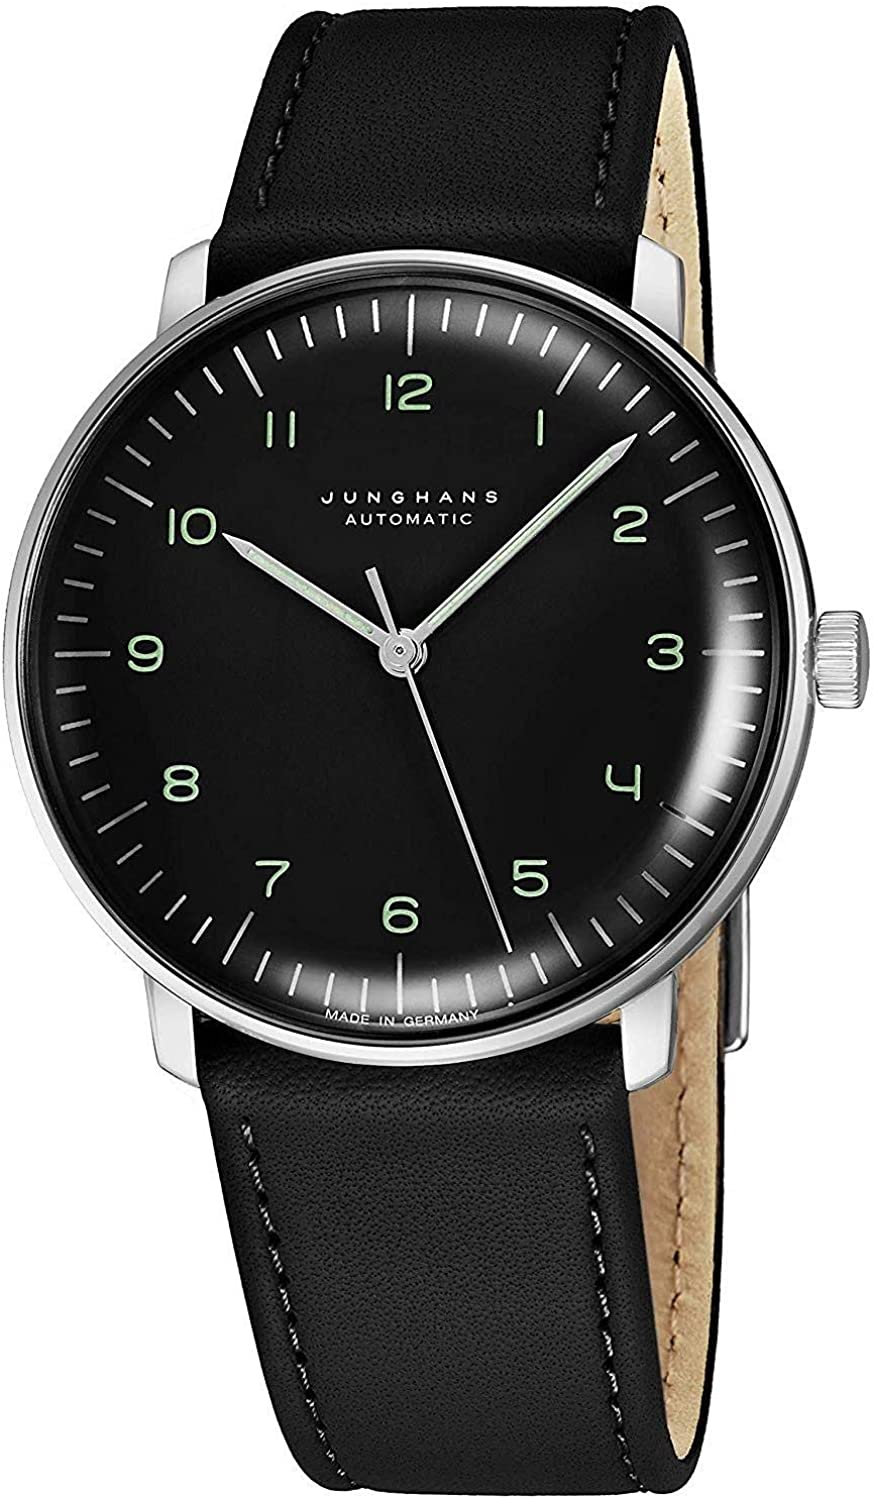 Junghans Max Bill Automatic Mens Watch – 38mm Analog Black Face Classic Watch with Luminous Hands – Stainless Steel Black Leather Band Luxury Watch for Men Made in Germany 027 3400.00